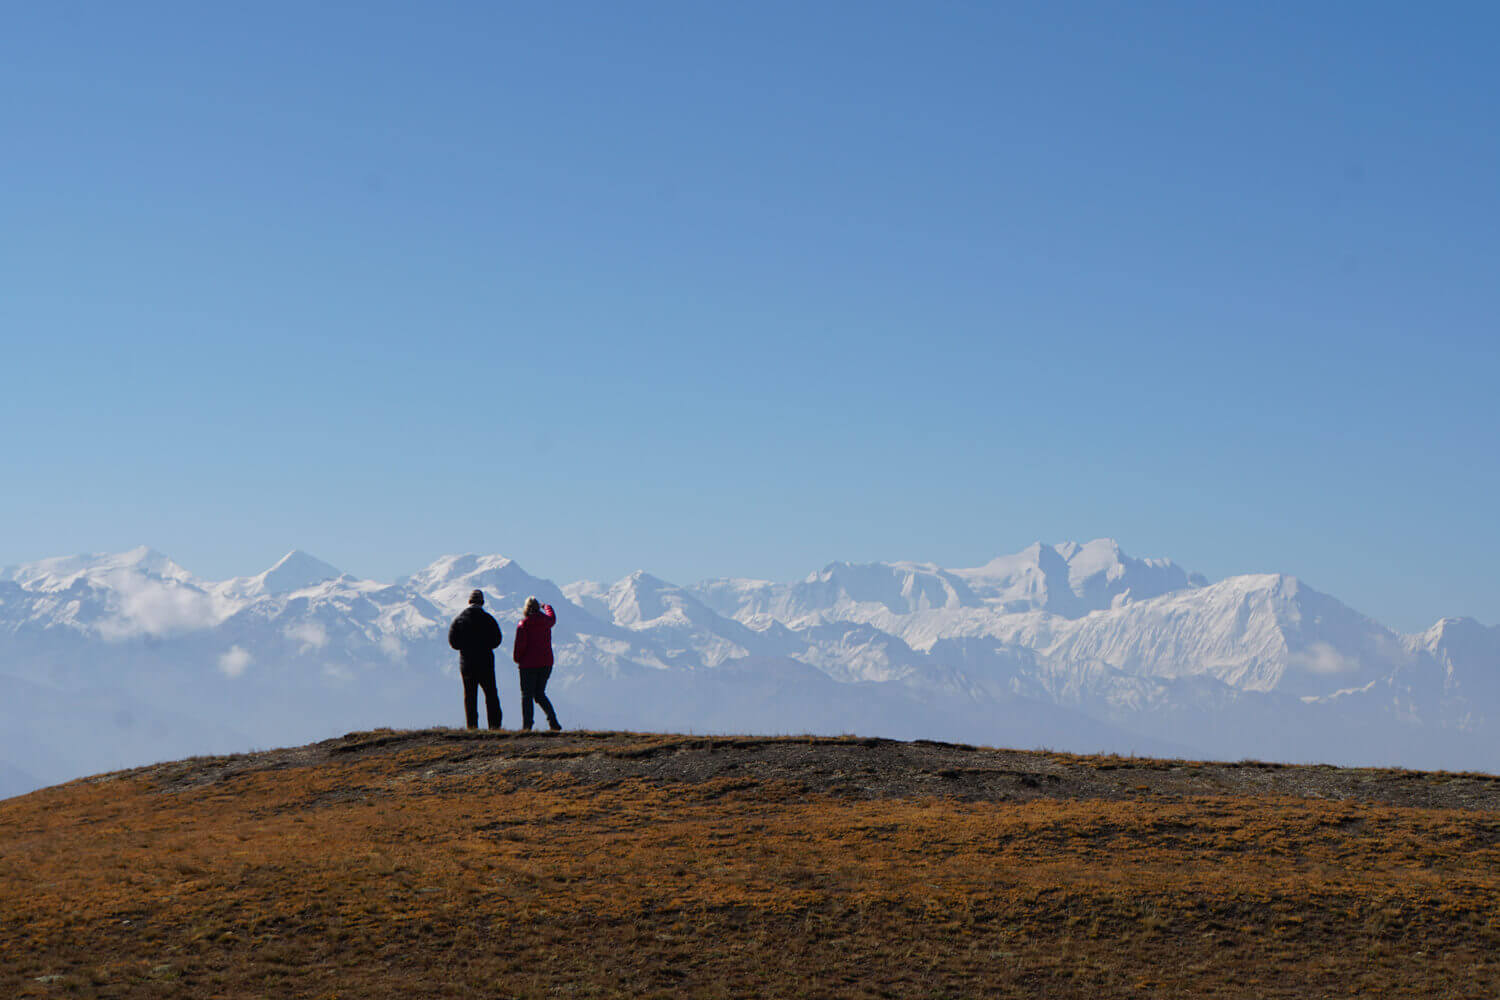 11-day trek is now a day's drive in Nepal